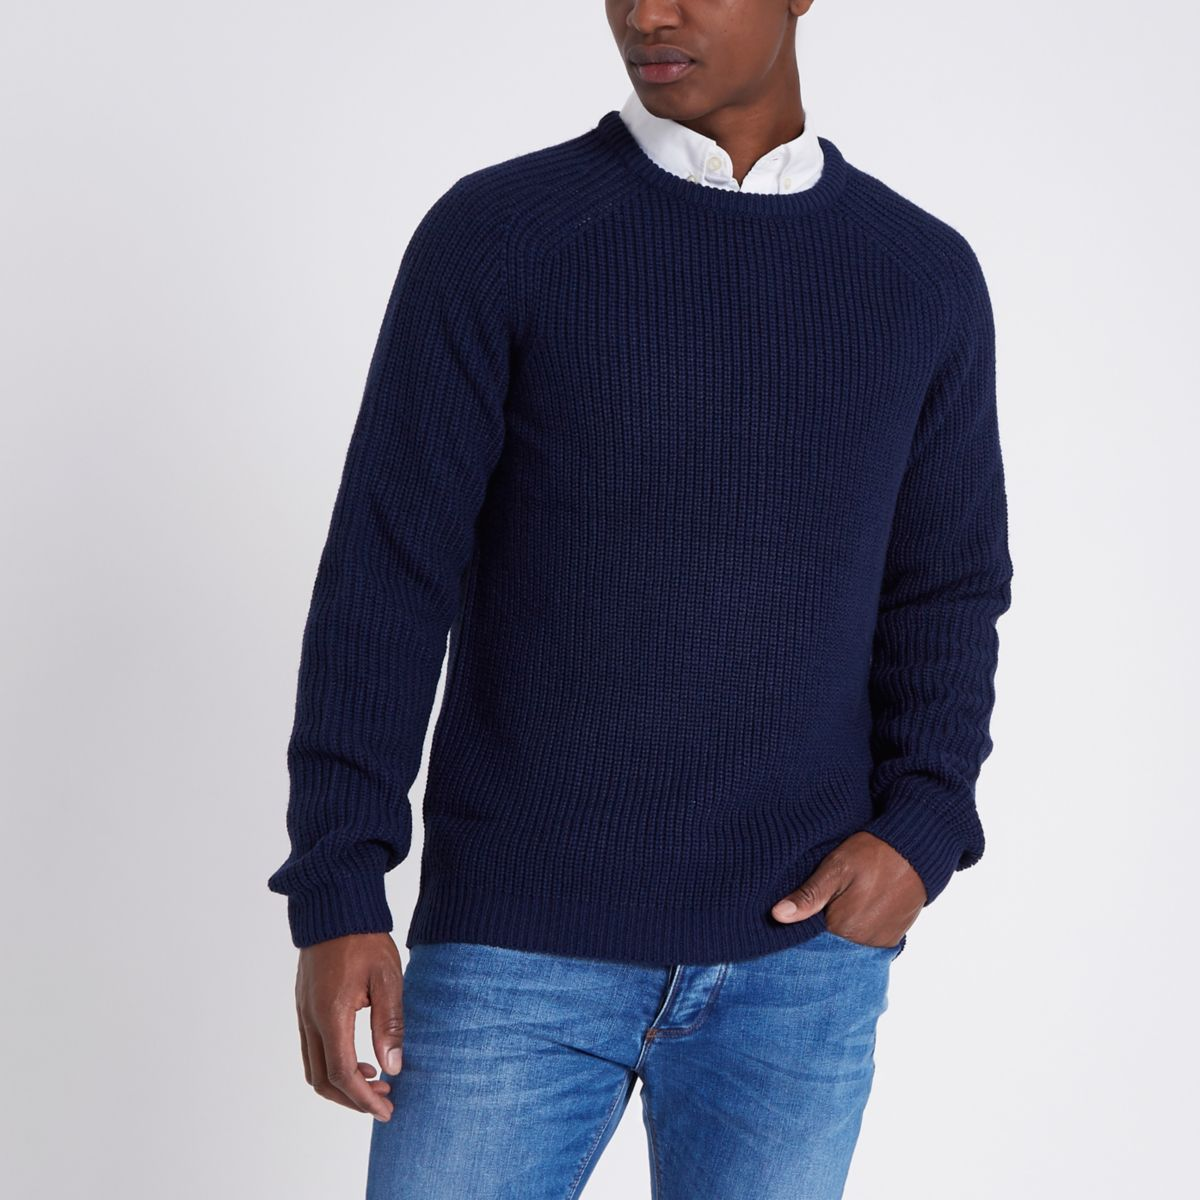 Blue raglan sleeve fisherman sweater